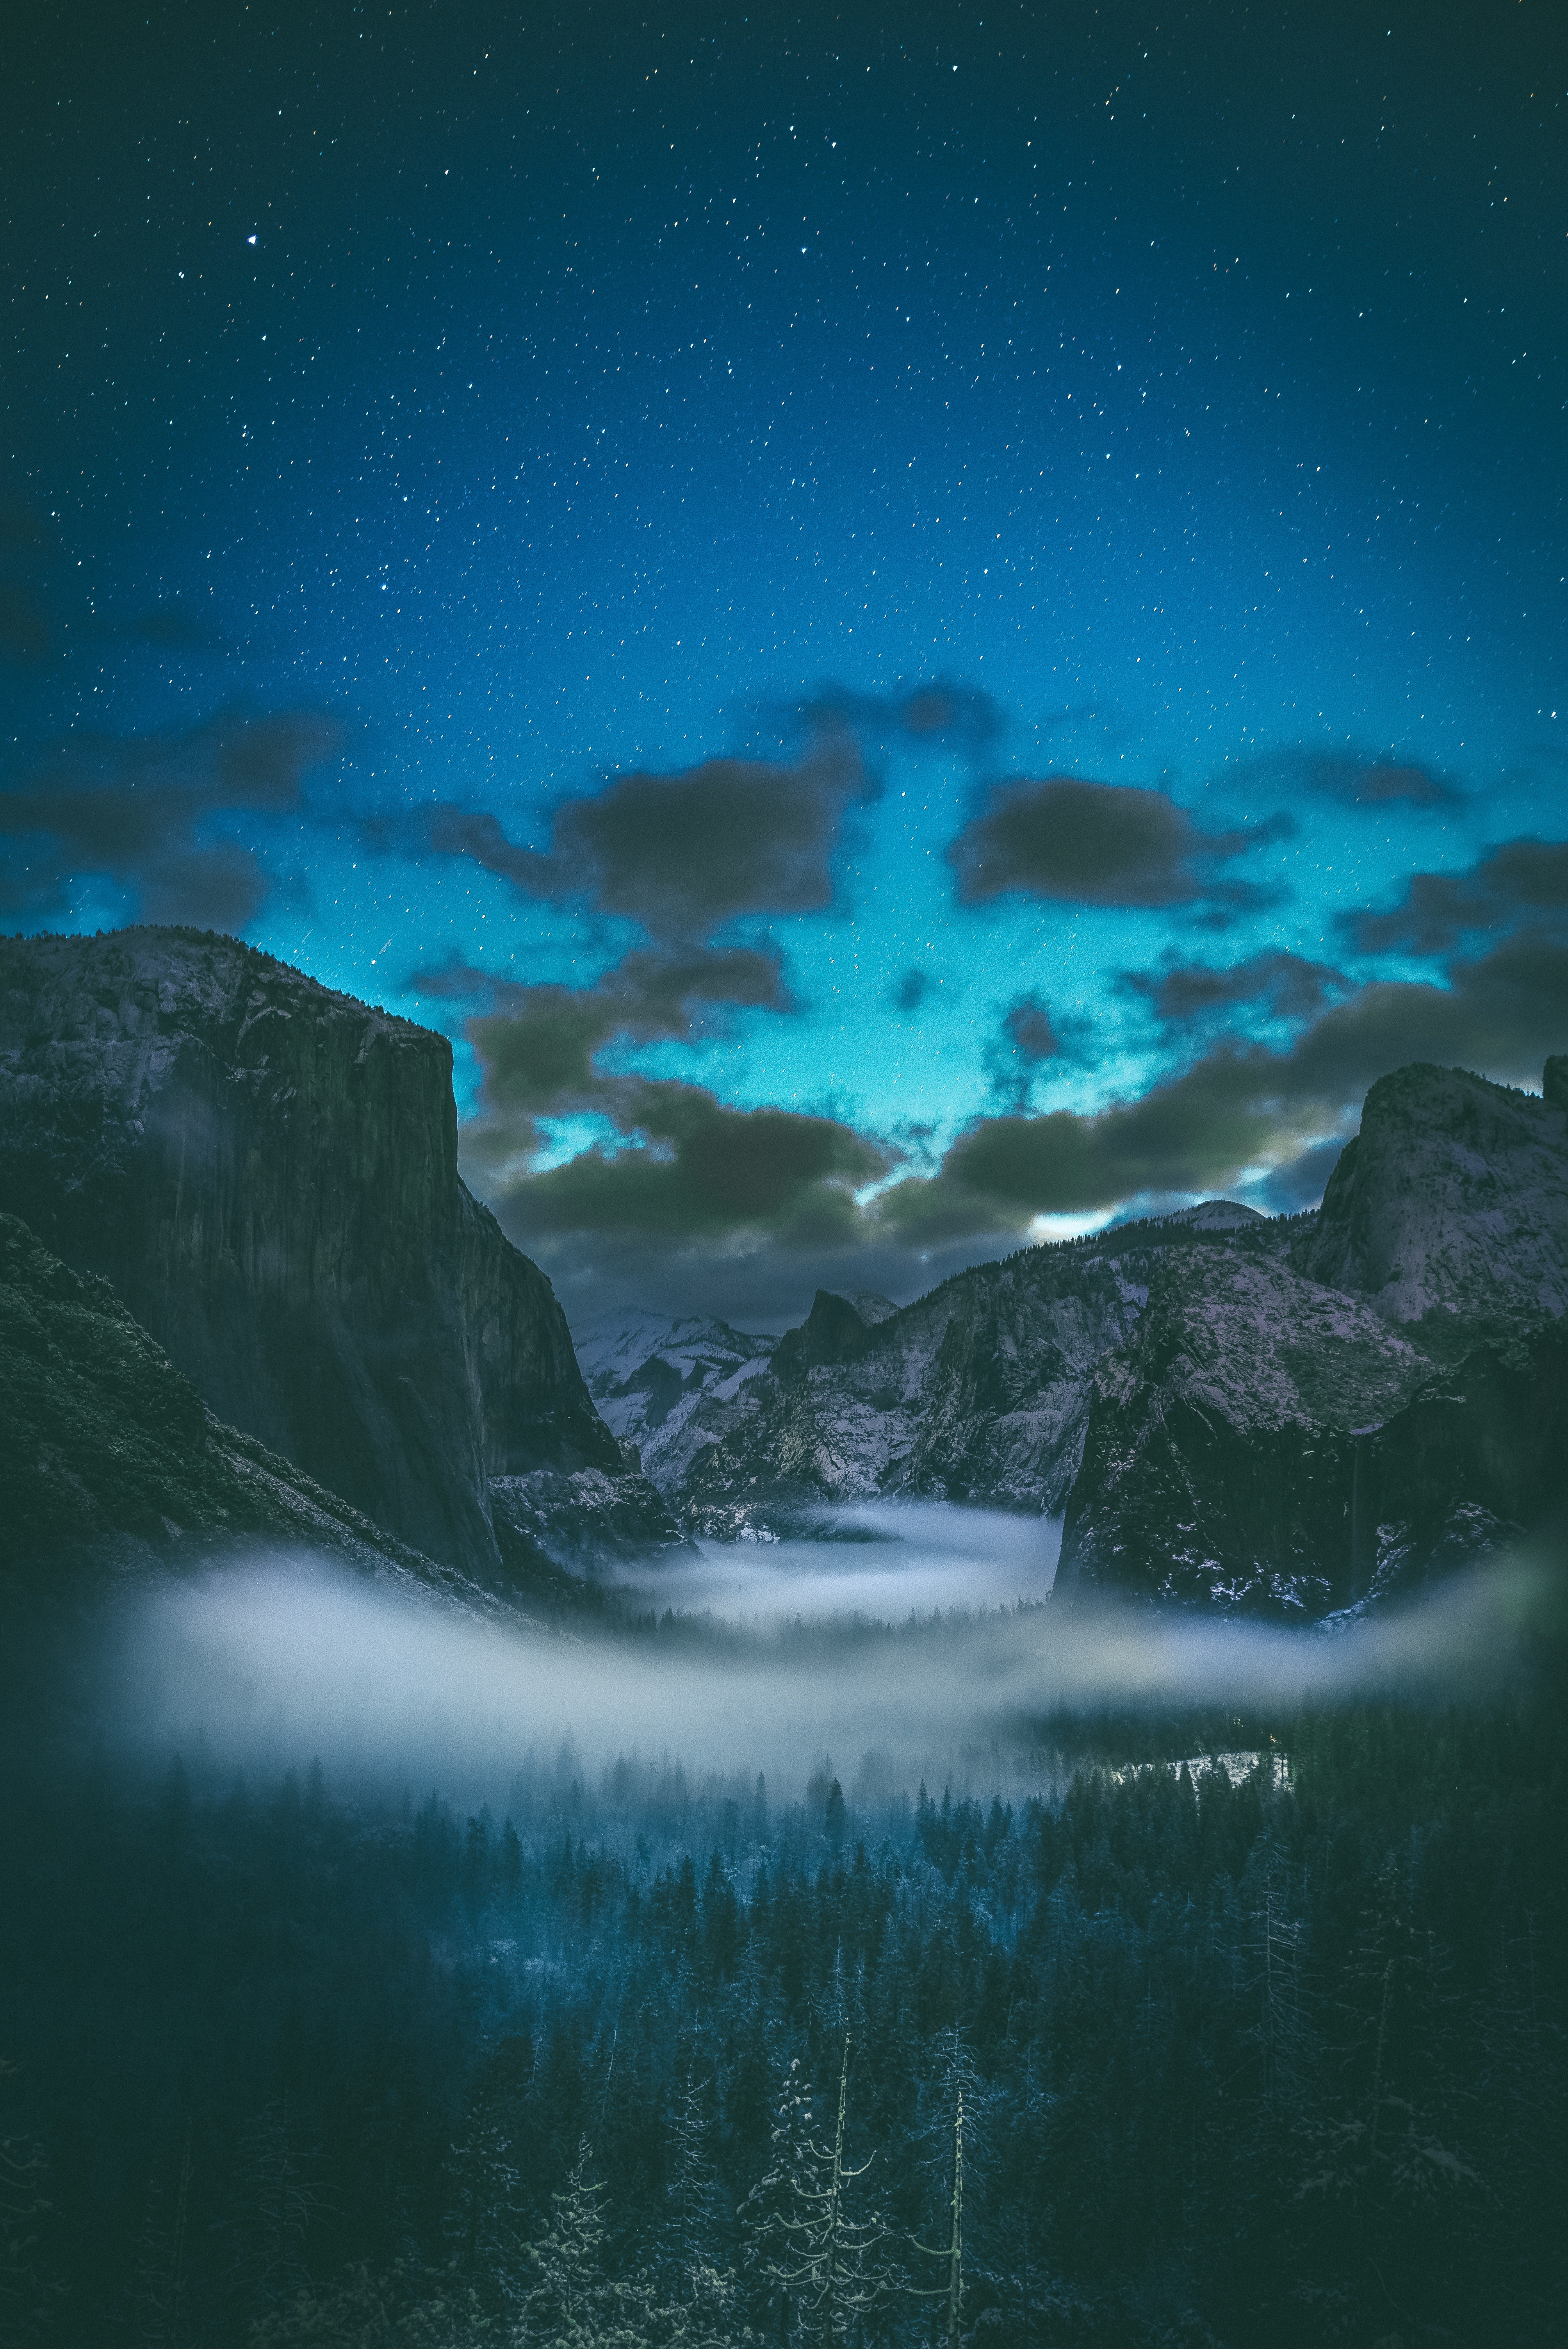 133155 download wallpaper Starry Sky, Nature, Mountains, Clouds, Fog screensavers and pictures for free